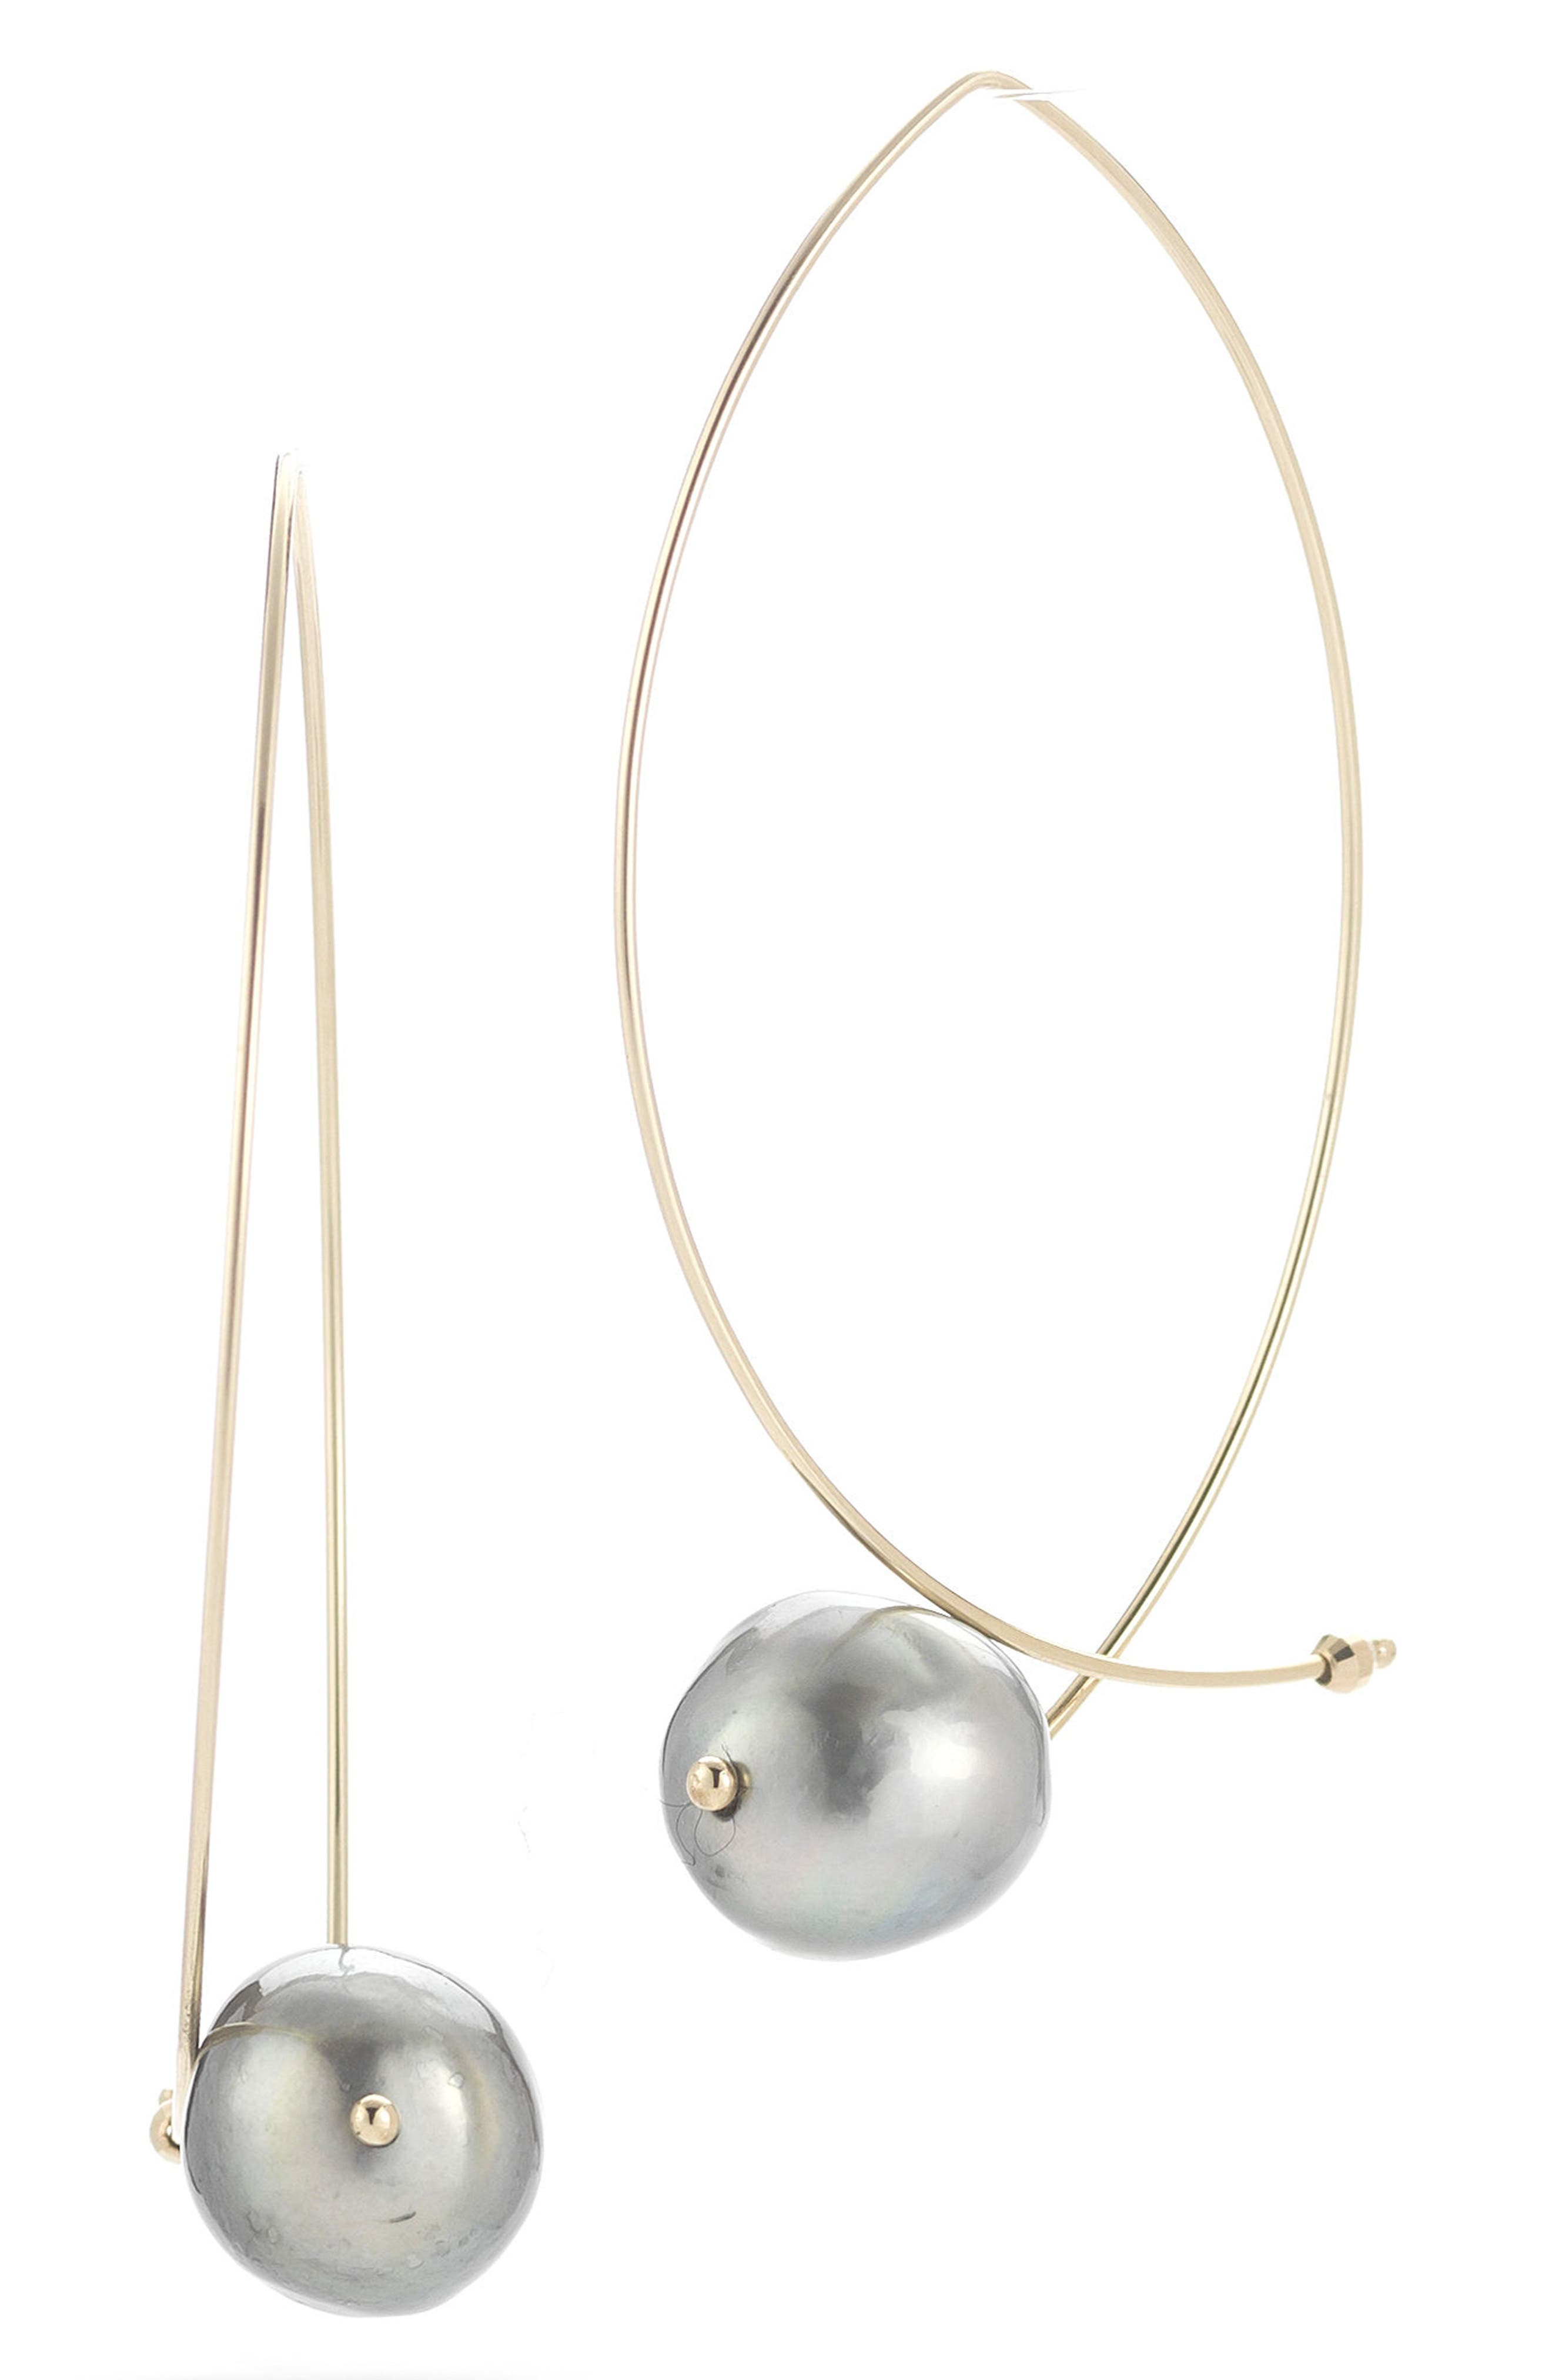 Sea of Beauty Tahitian Pearl Hoop Earrings,                         Main,                         color, Yellow Gold/ Gblack Pearl